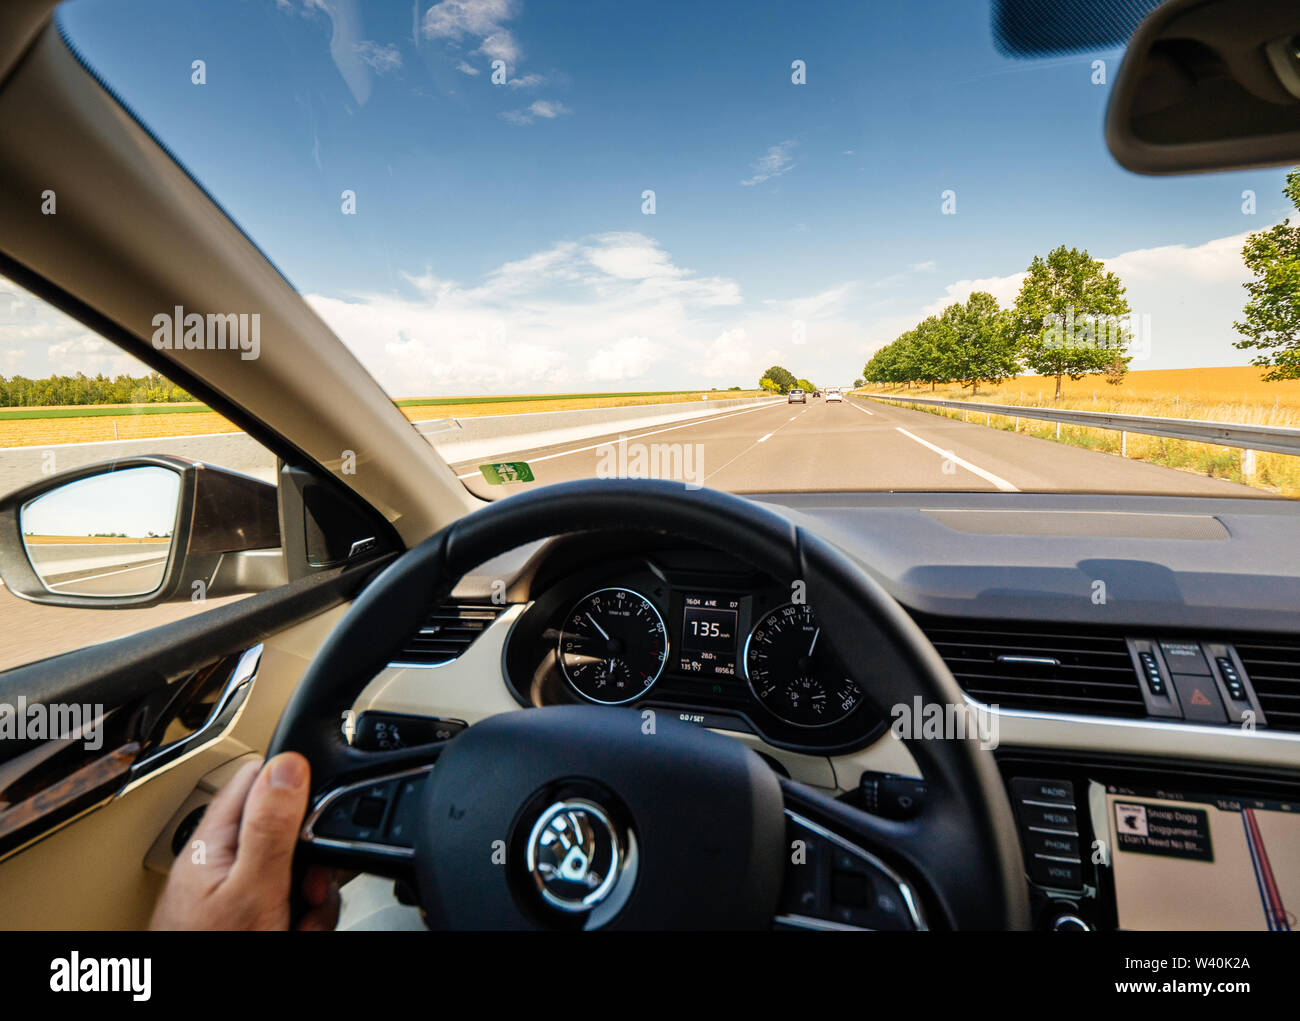 France - Jul 15, 2018: Man hand holding steering wheel driving with 135 KM per hour on French highway inside new luxury electric Skoda car - Stock Image